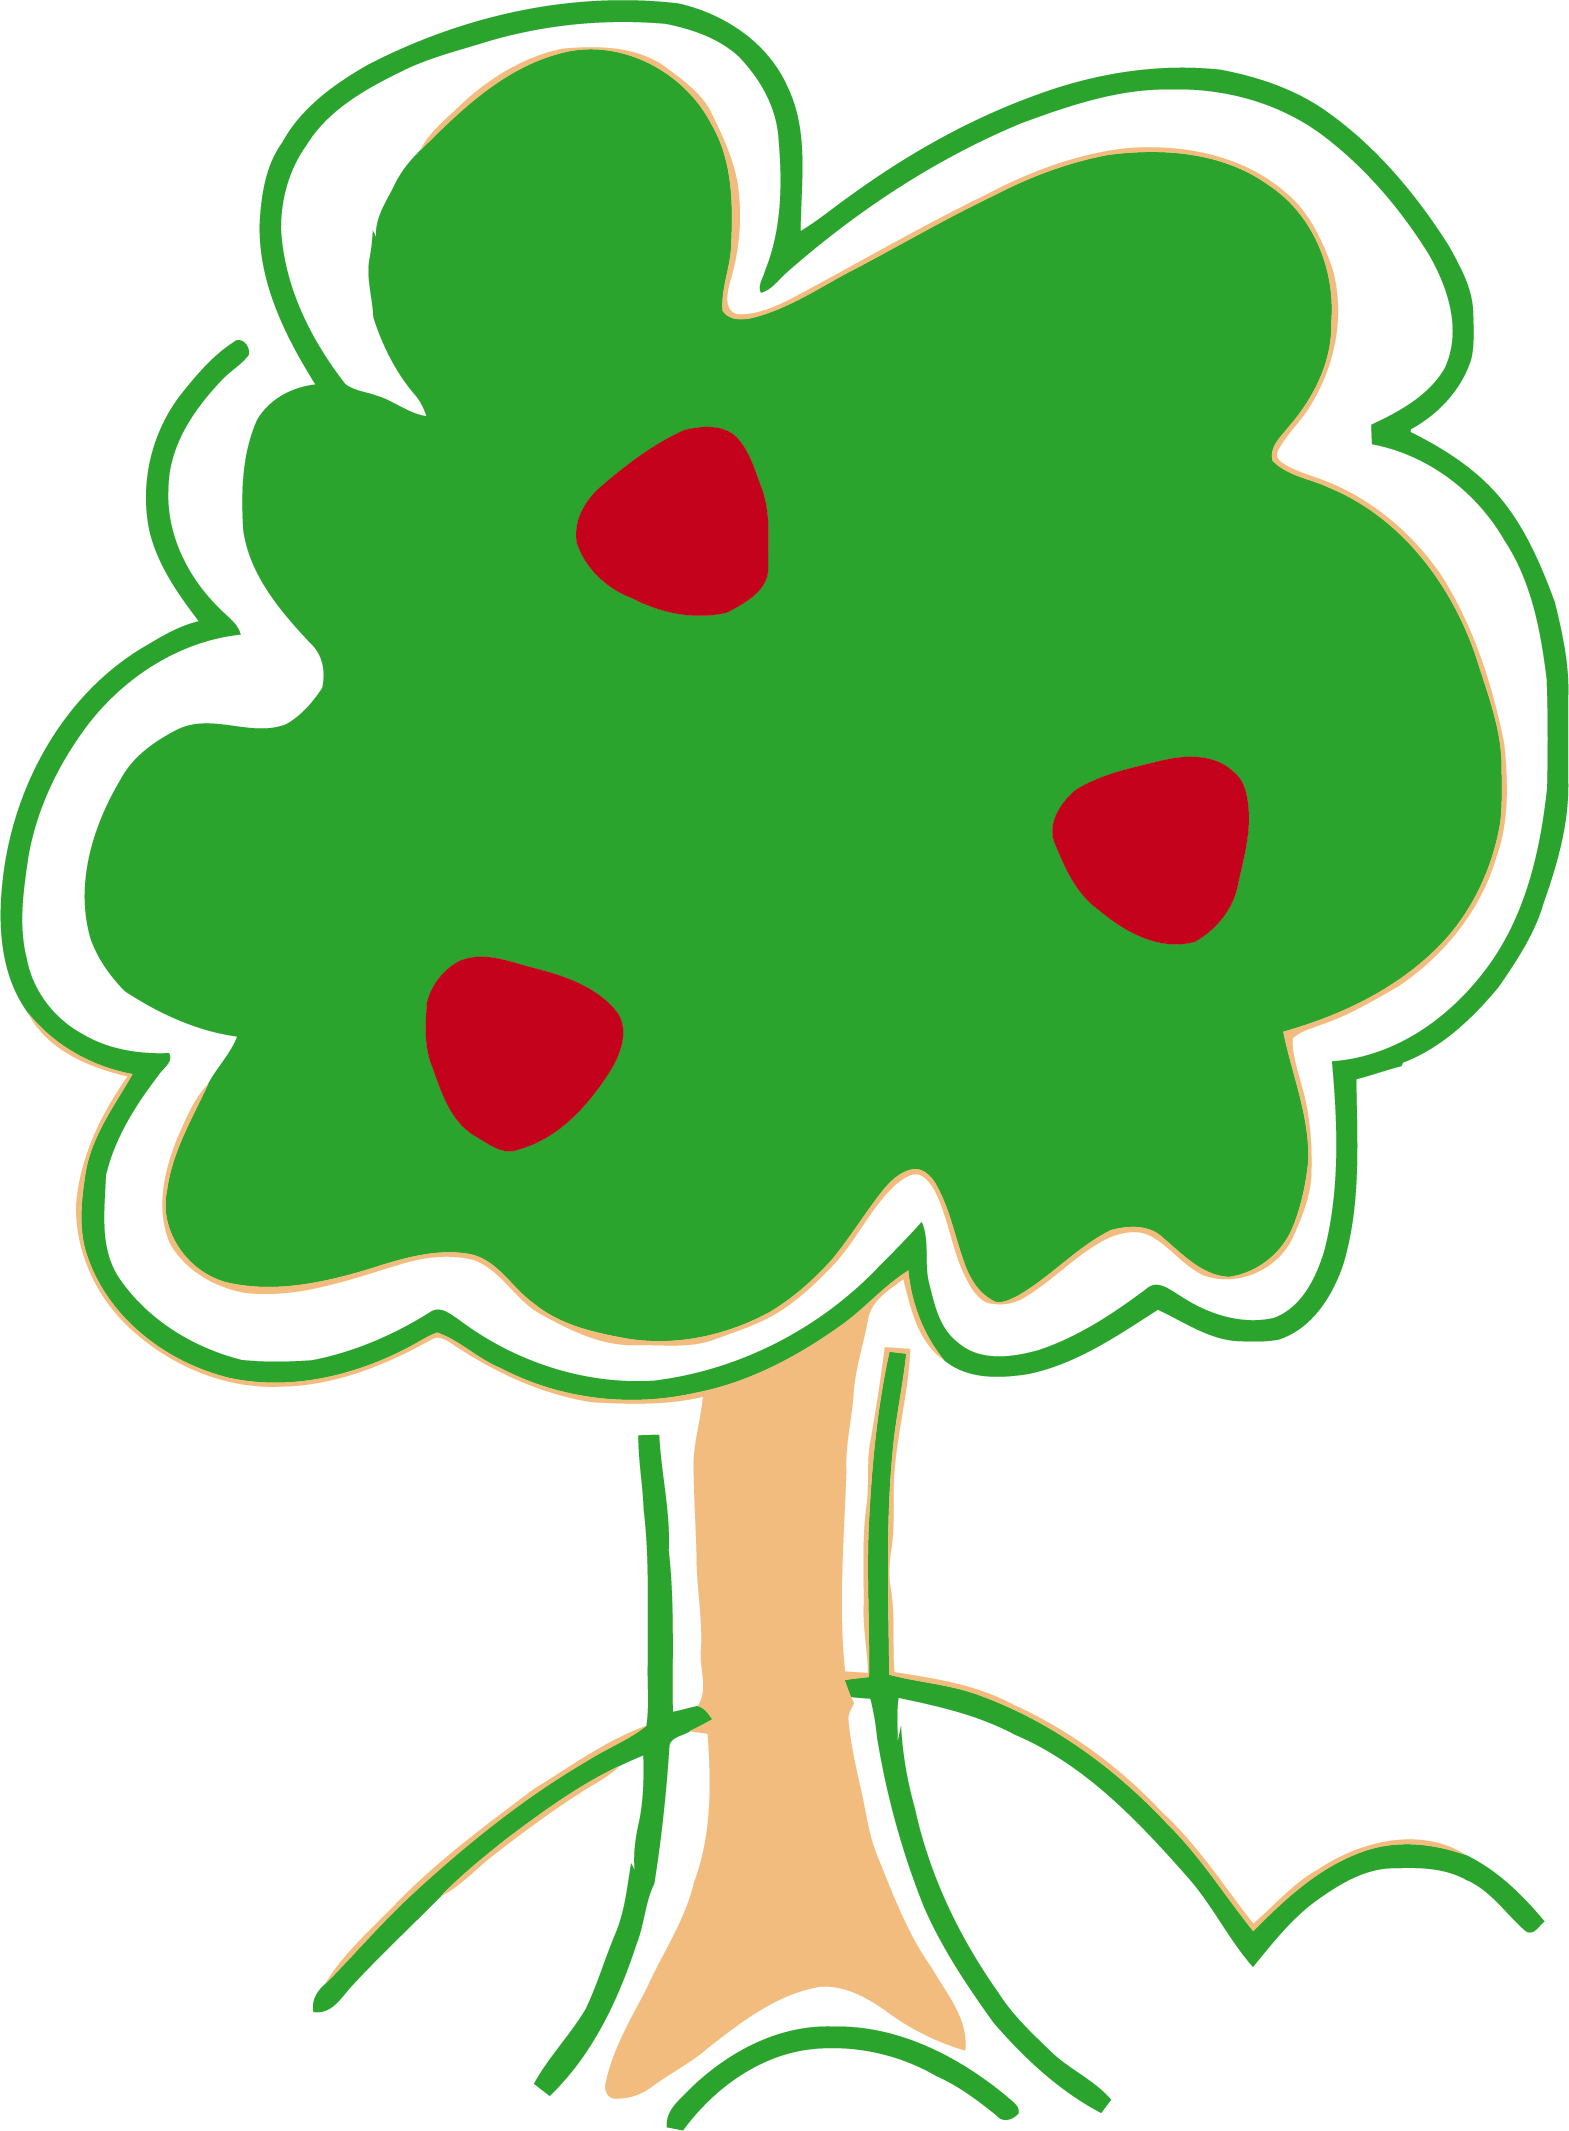 Tree clipart cute. Basic apple png clipartly